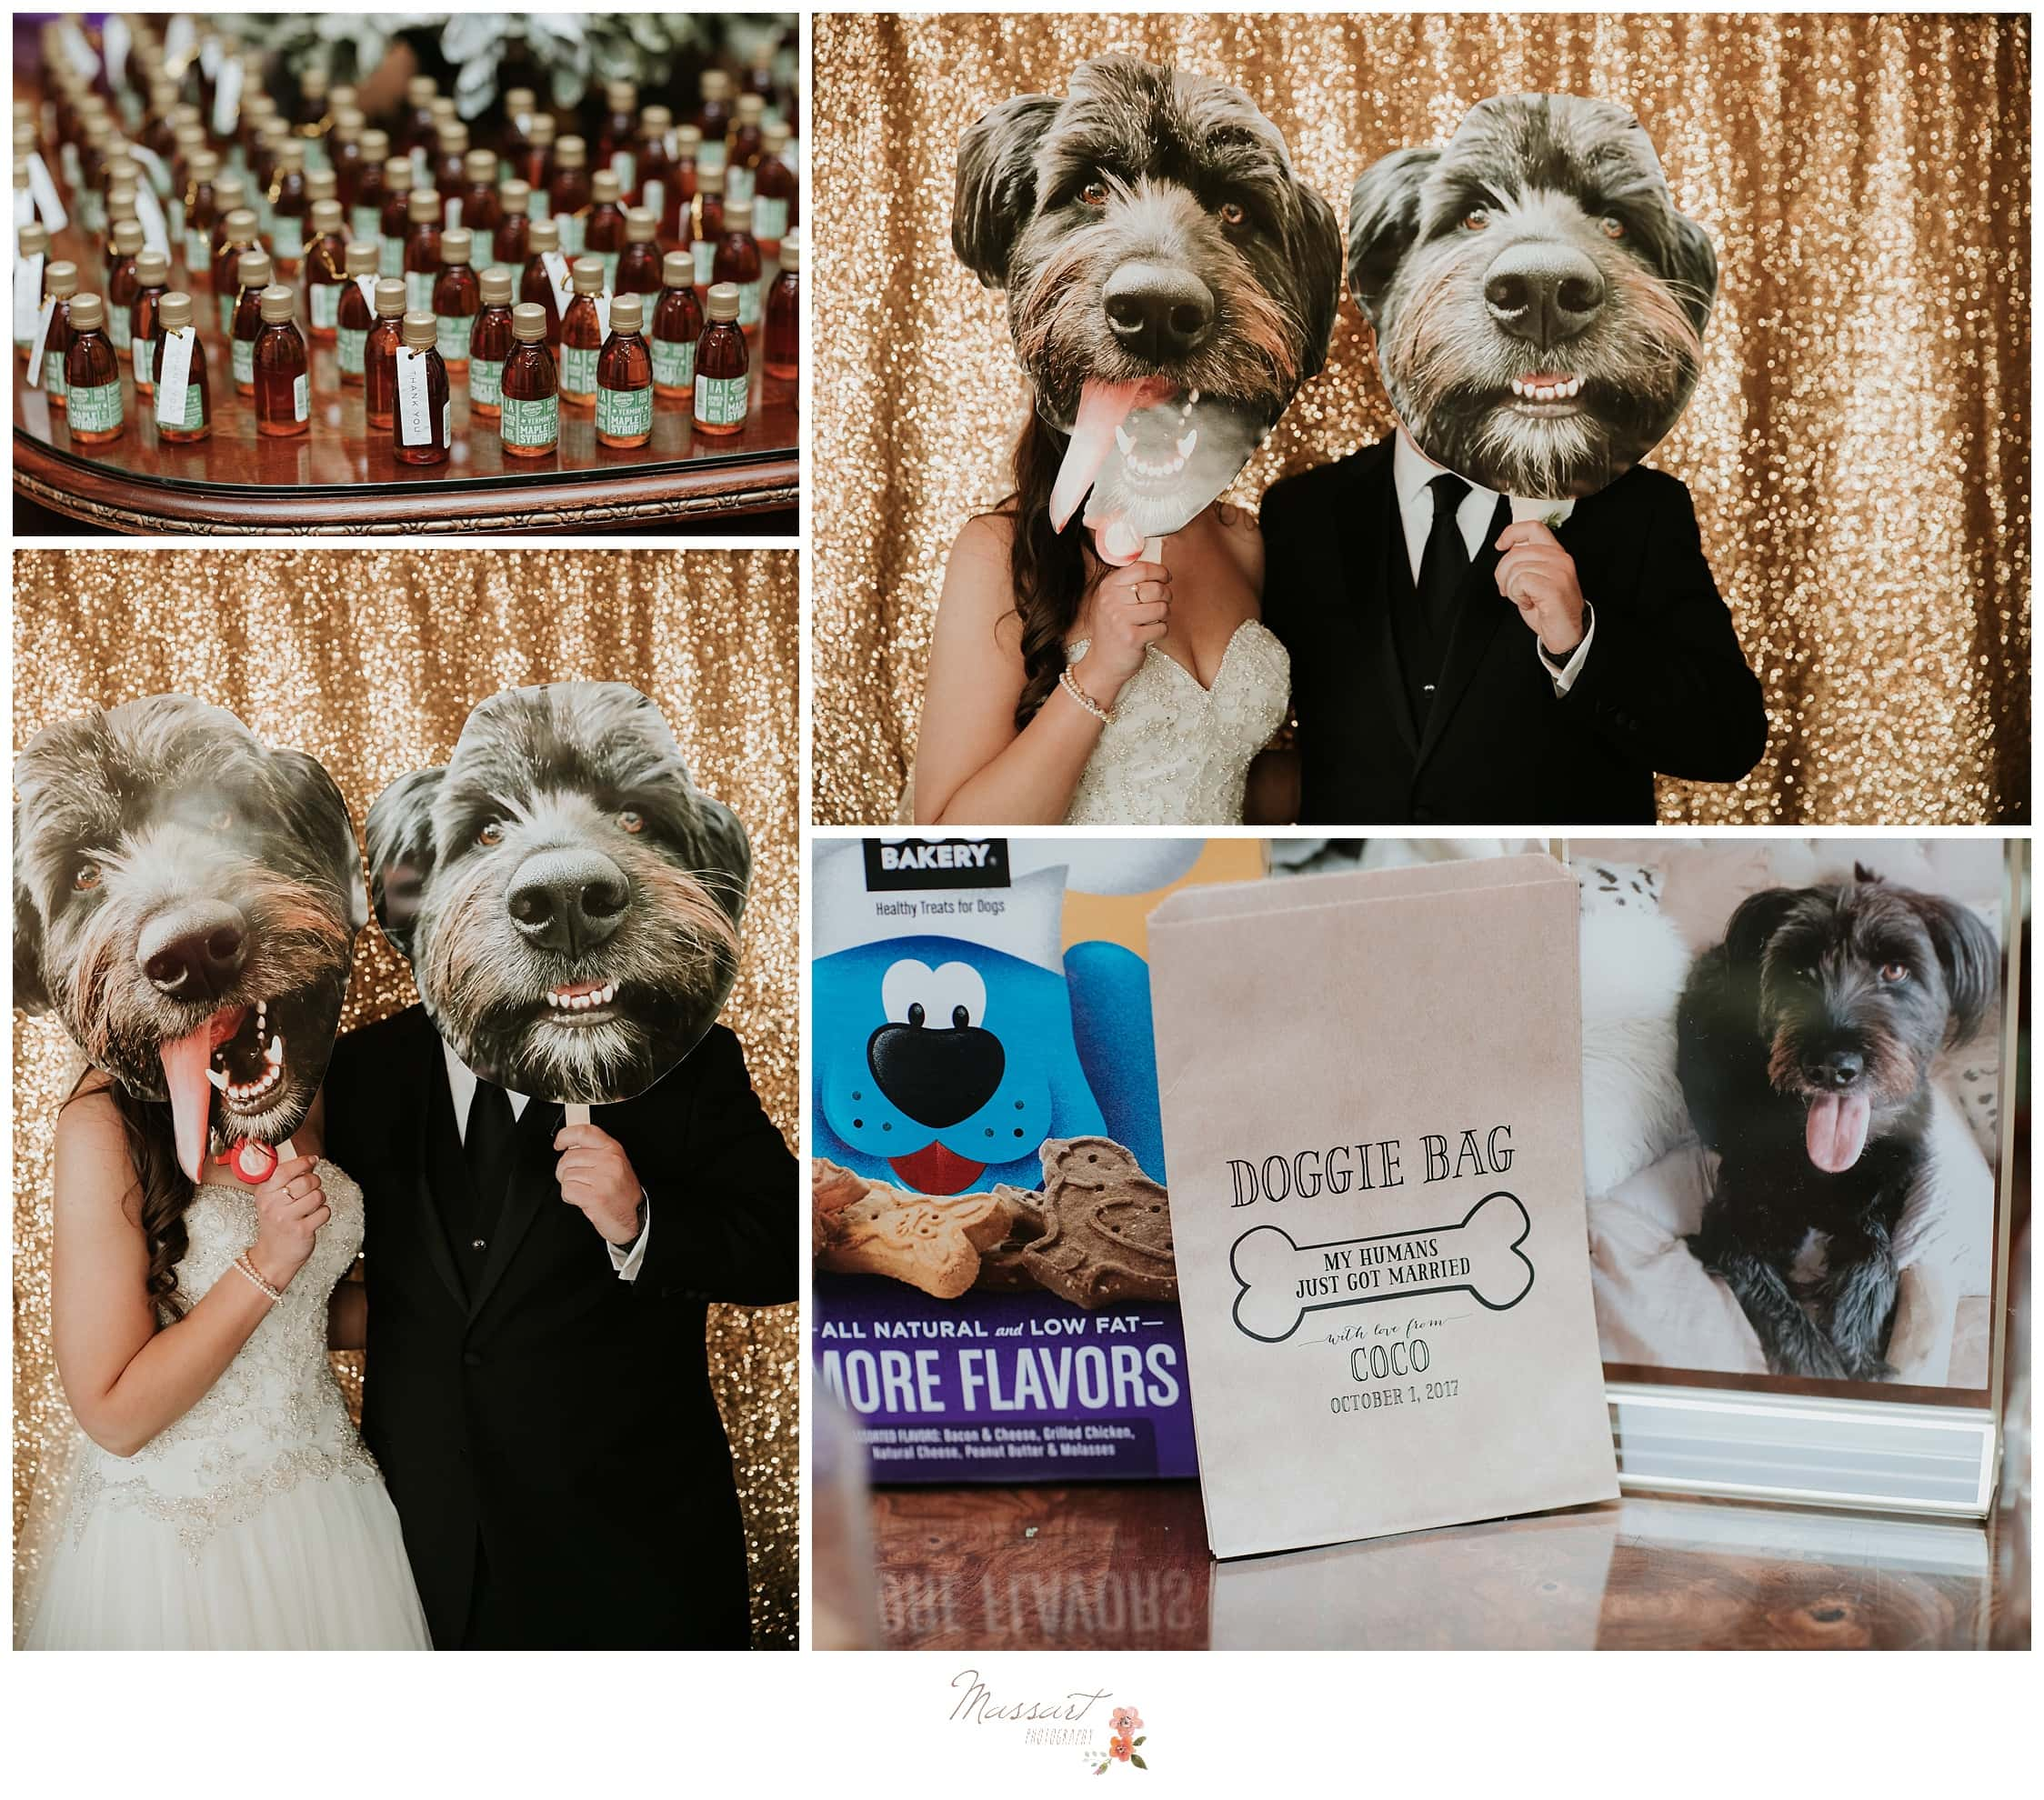 Wedding reception favors featuring the bride and groom's dog photographed by Massart Photography of Warwick, Rhode Island